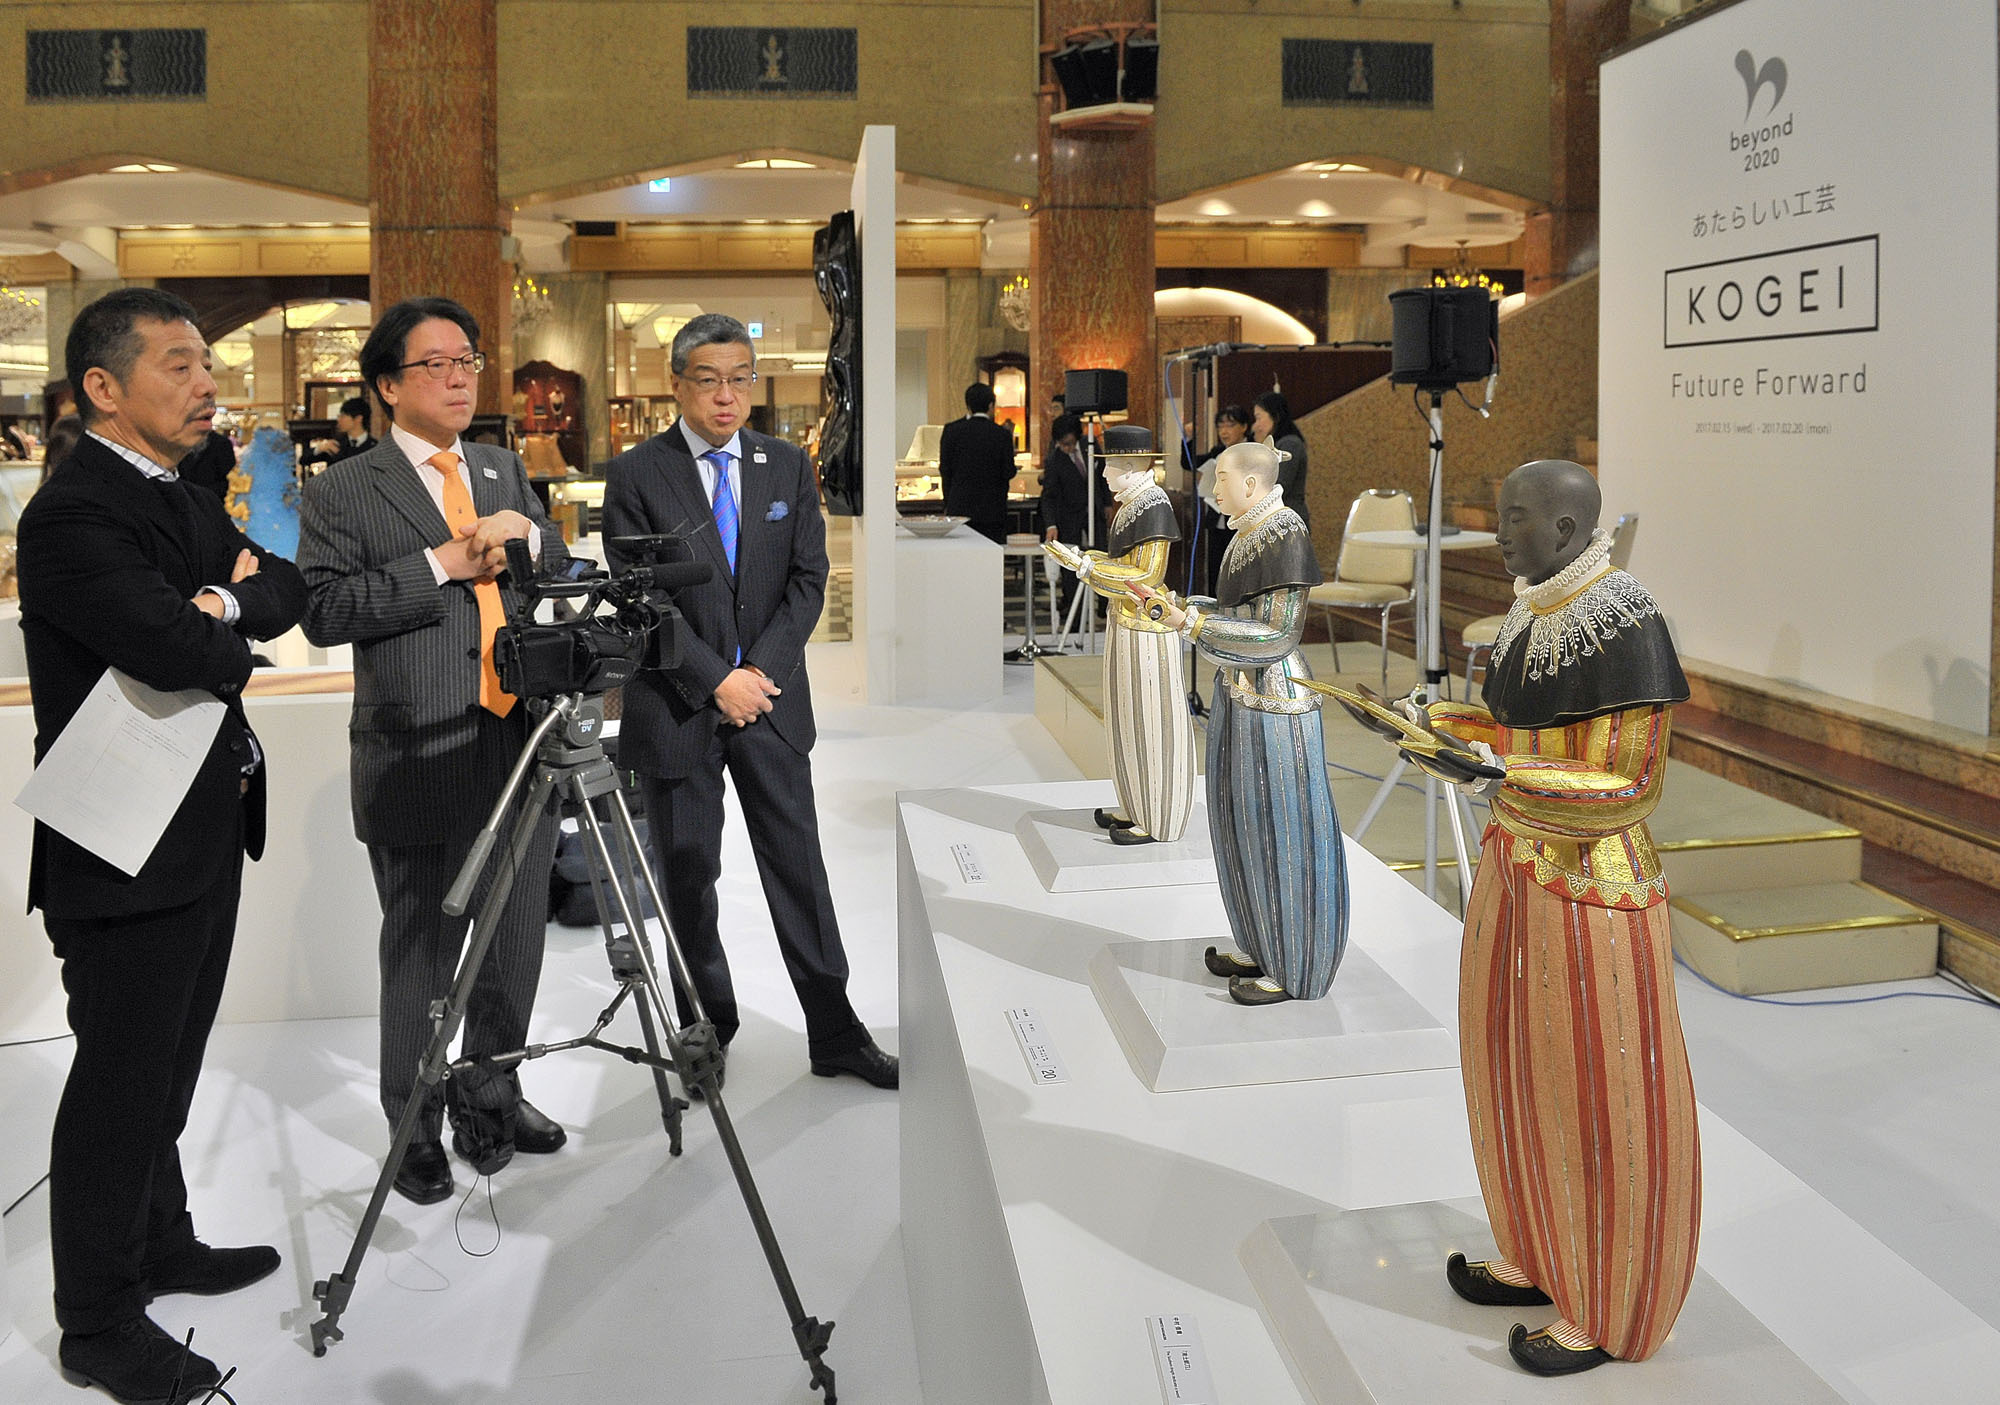 "(From left) Tokyo University of the Arts professor Yuji Akimoto; Secretary-General of the Secretariat of the Headquarters for the Tokyo 2020 Olympic and Paralympic Games Takeo Hirata; and President and CEO of Isetan Mitsukoshi Holdings. Ltd. Hiroshi Ohnishi attend a preview of the ""KOGEI Future Forward"" exhibition, which runs through Feb. 20, at the Nihombashi Mitsukoshi Main Building on Feb. 15. 